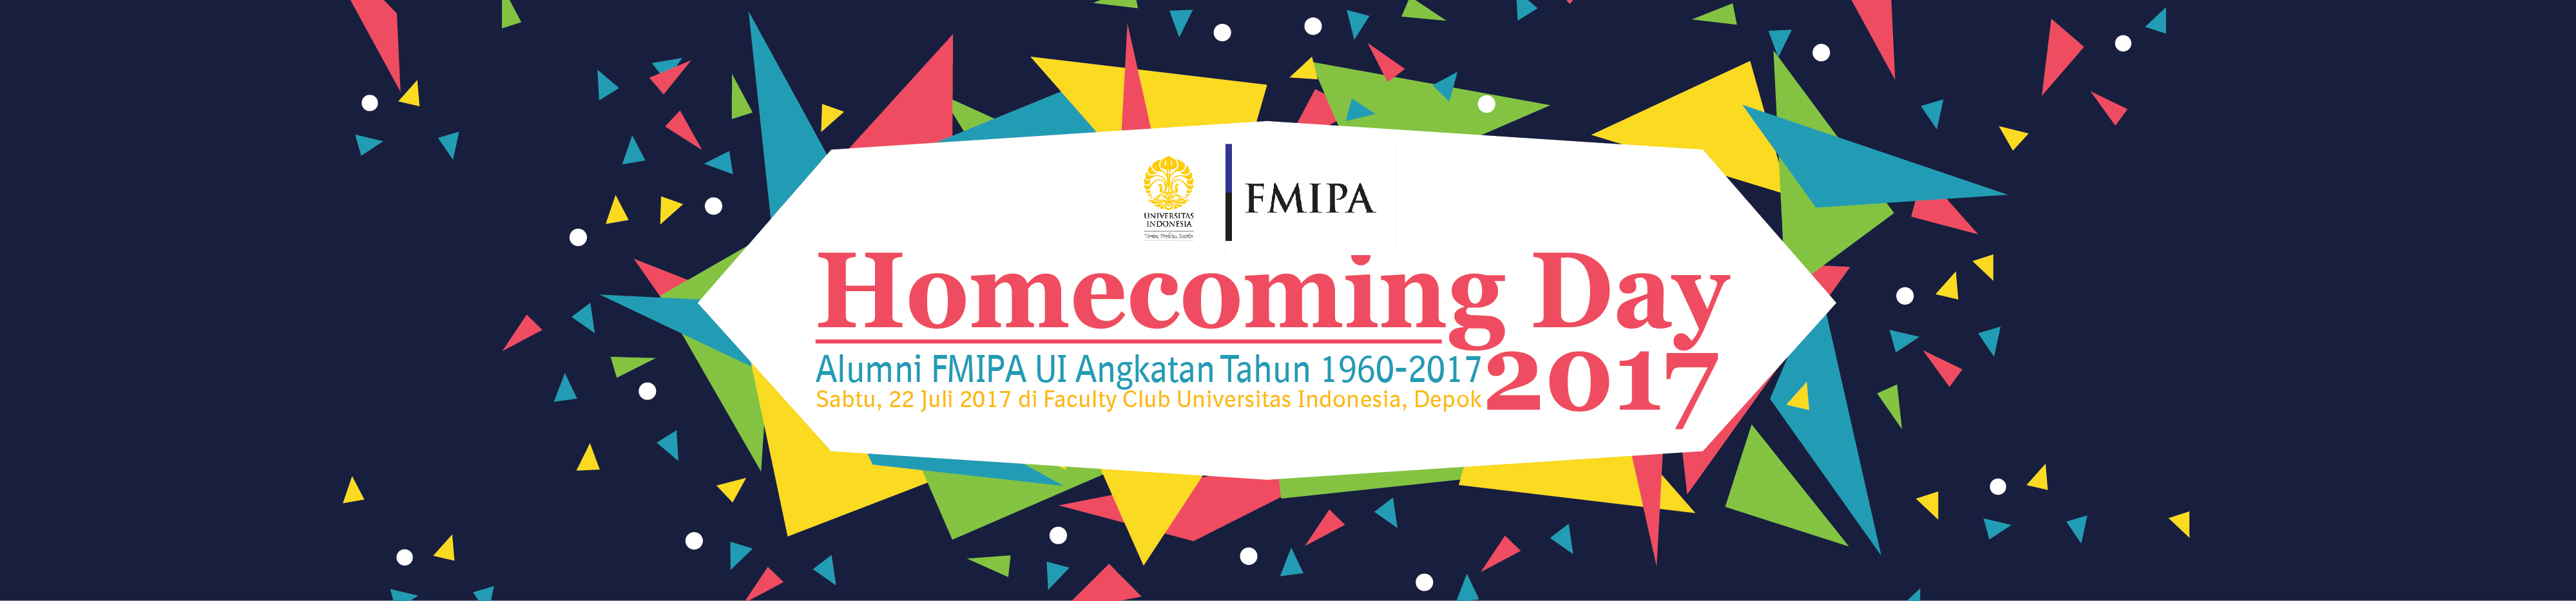 Homecoming-Day-2017